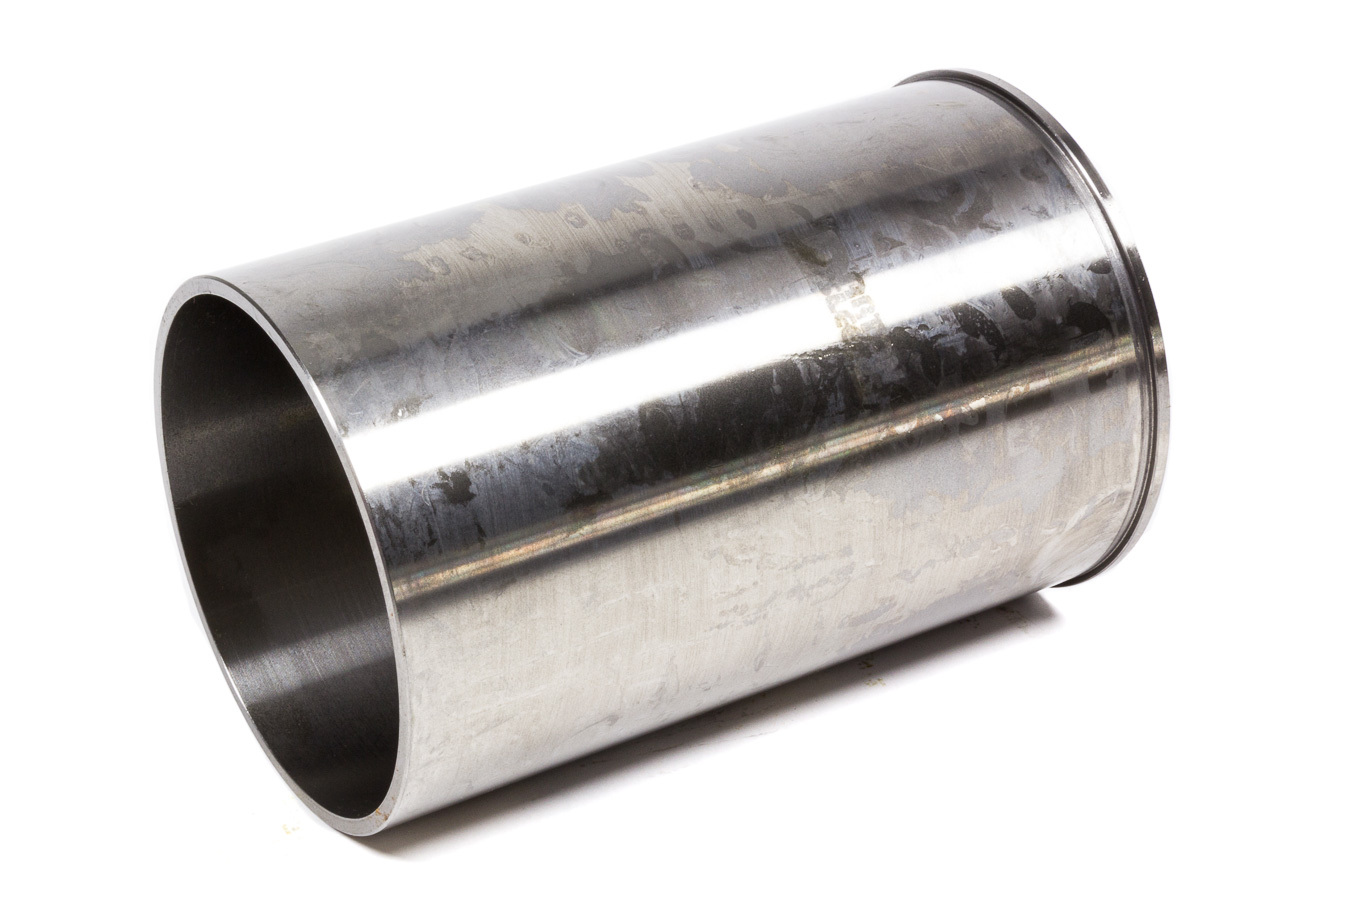 Darton Sleeves 100-3138 Cylinder Sleeve, 4.090 in Bore, 6.750 in Height, 4.375 in OD, 0.143 in Wall, Steel, Small Block Chevy, Each